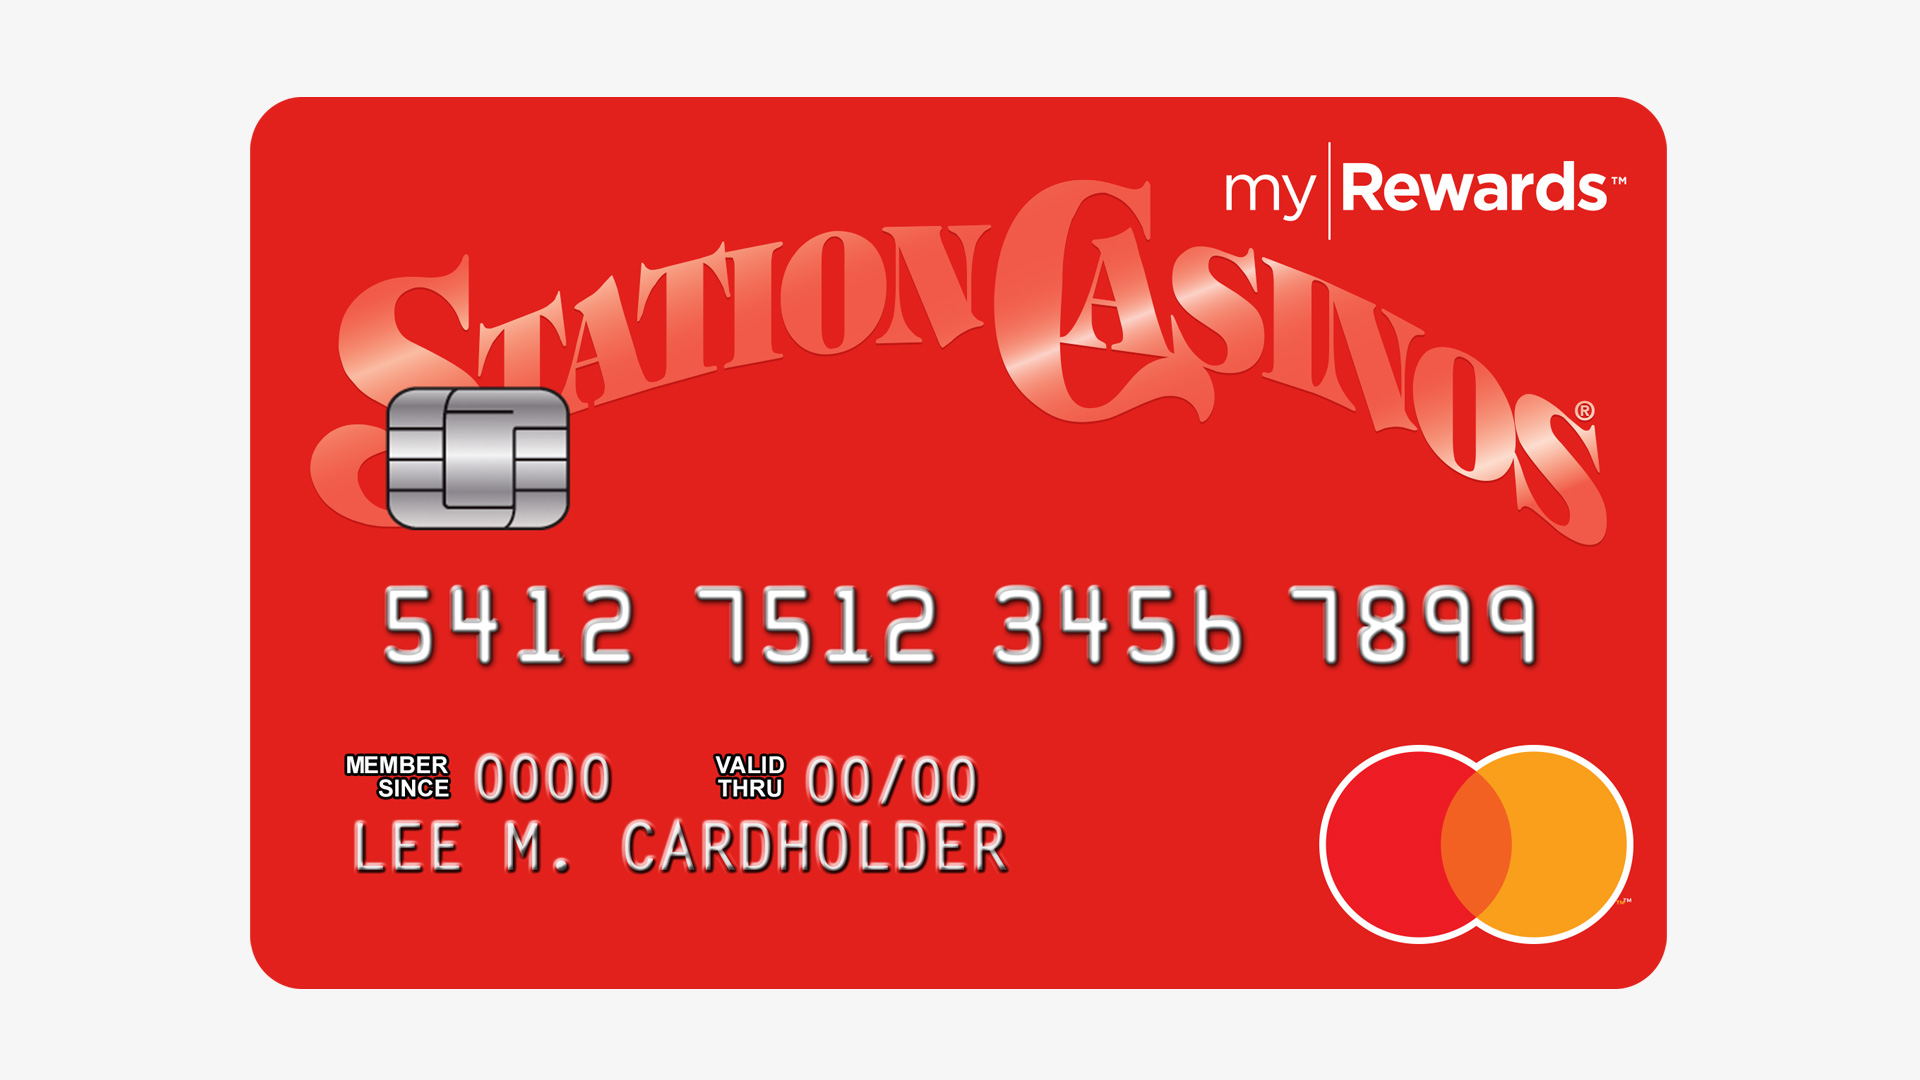 Station Casinos My Rewards Mastercard